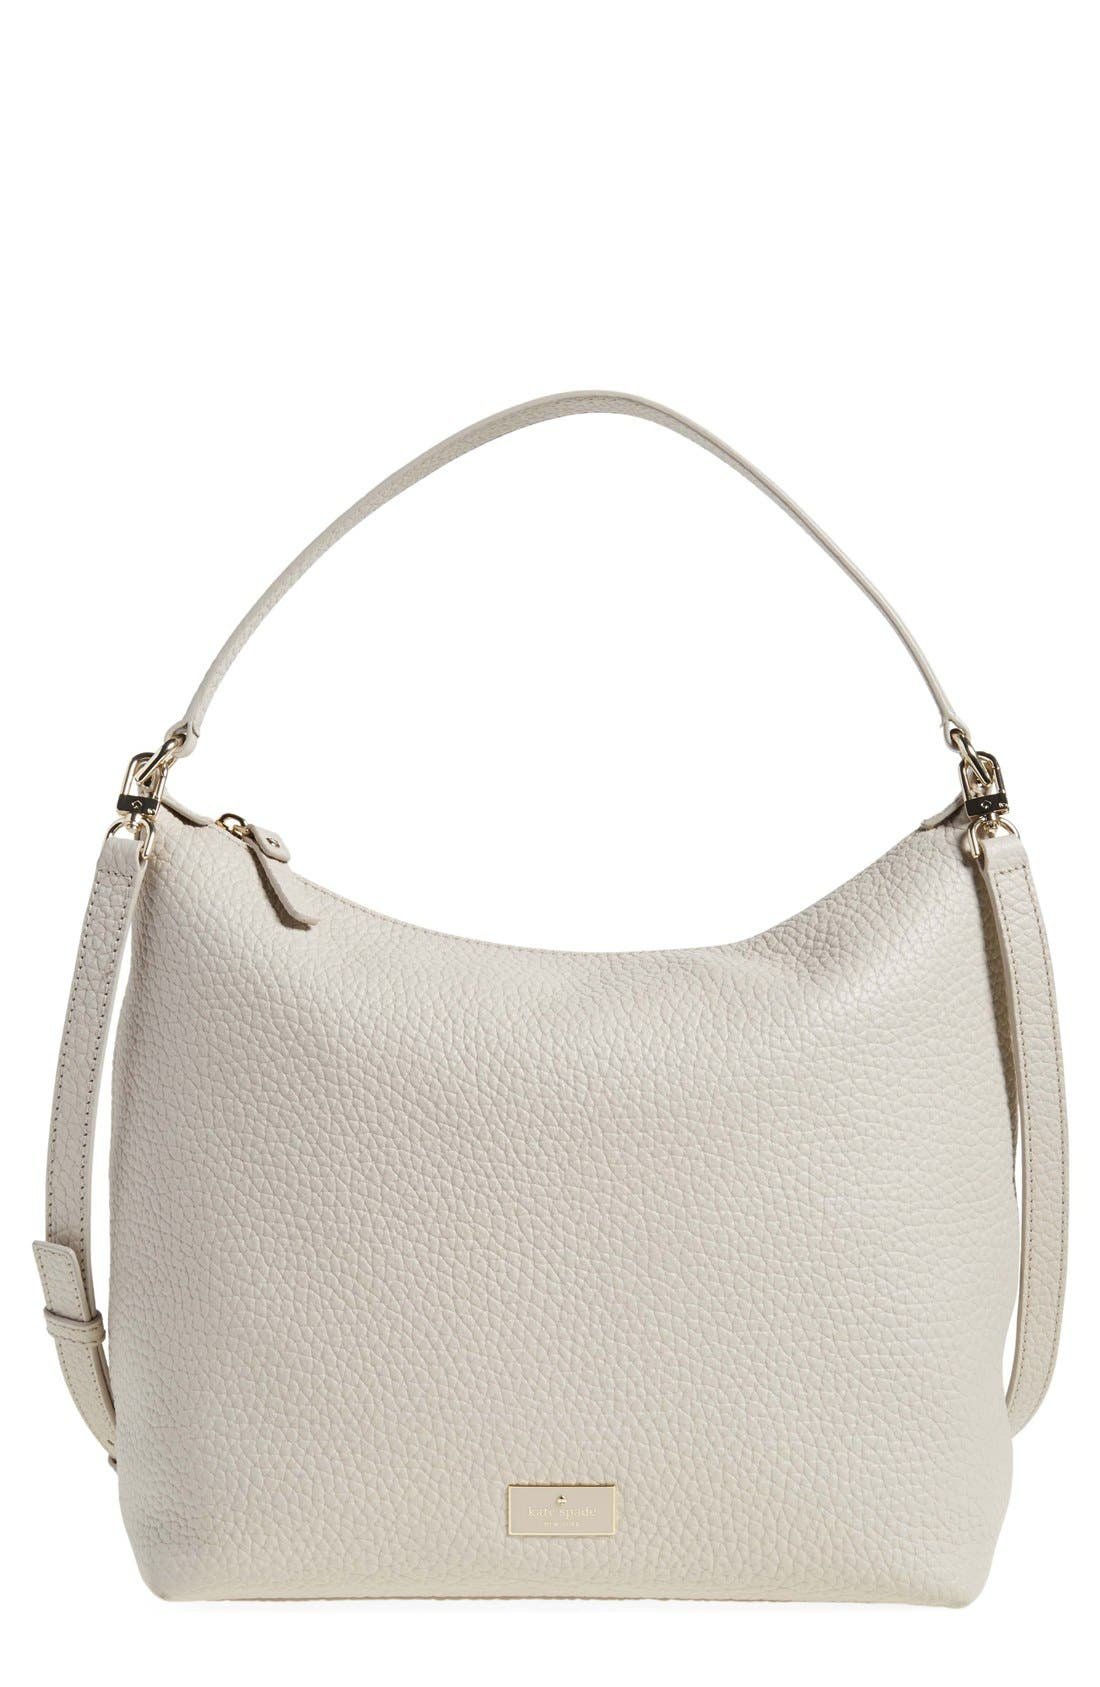 Main Image - kate spade new york 'prospect place - kaia' leather hobo